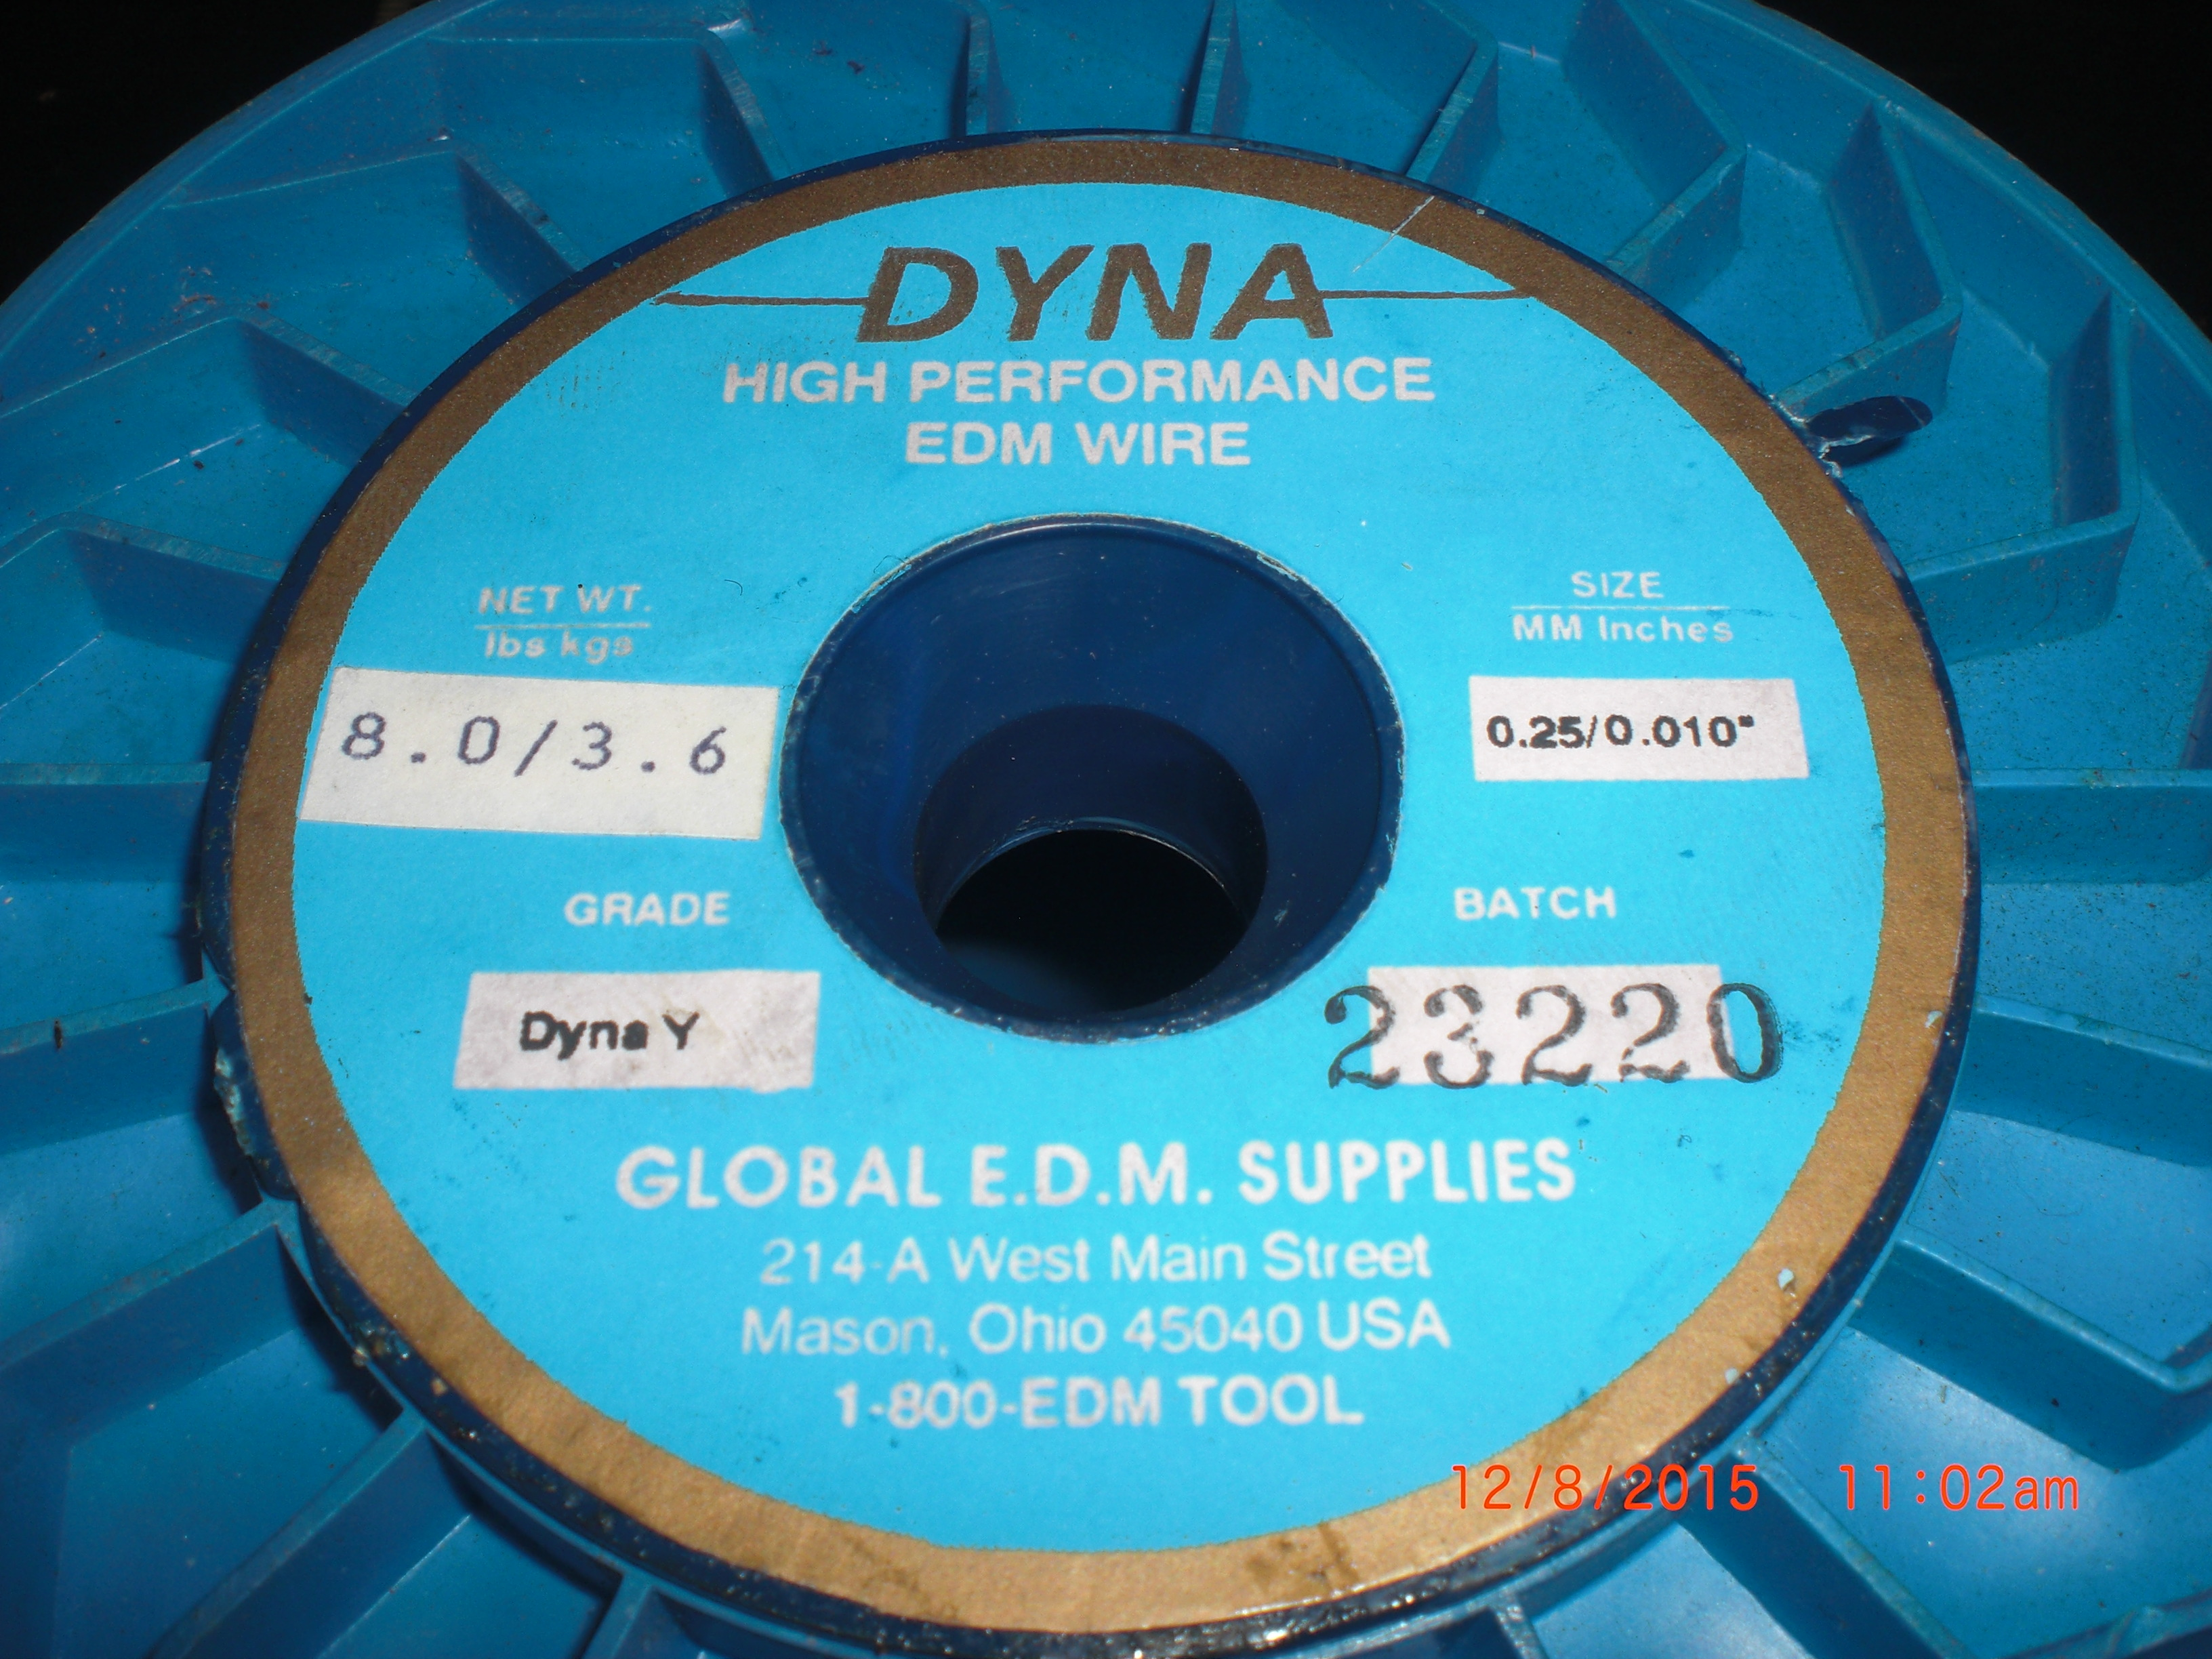 Hardware Y EDM Wire Dyna High Perfomance 8LB GLOBAL E.D.M. SUPPLIES 0.25/0.010